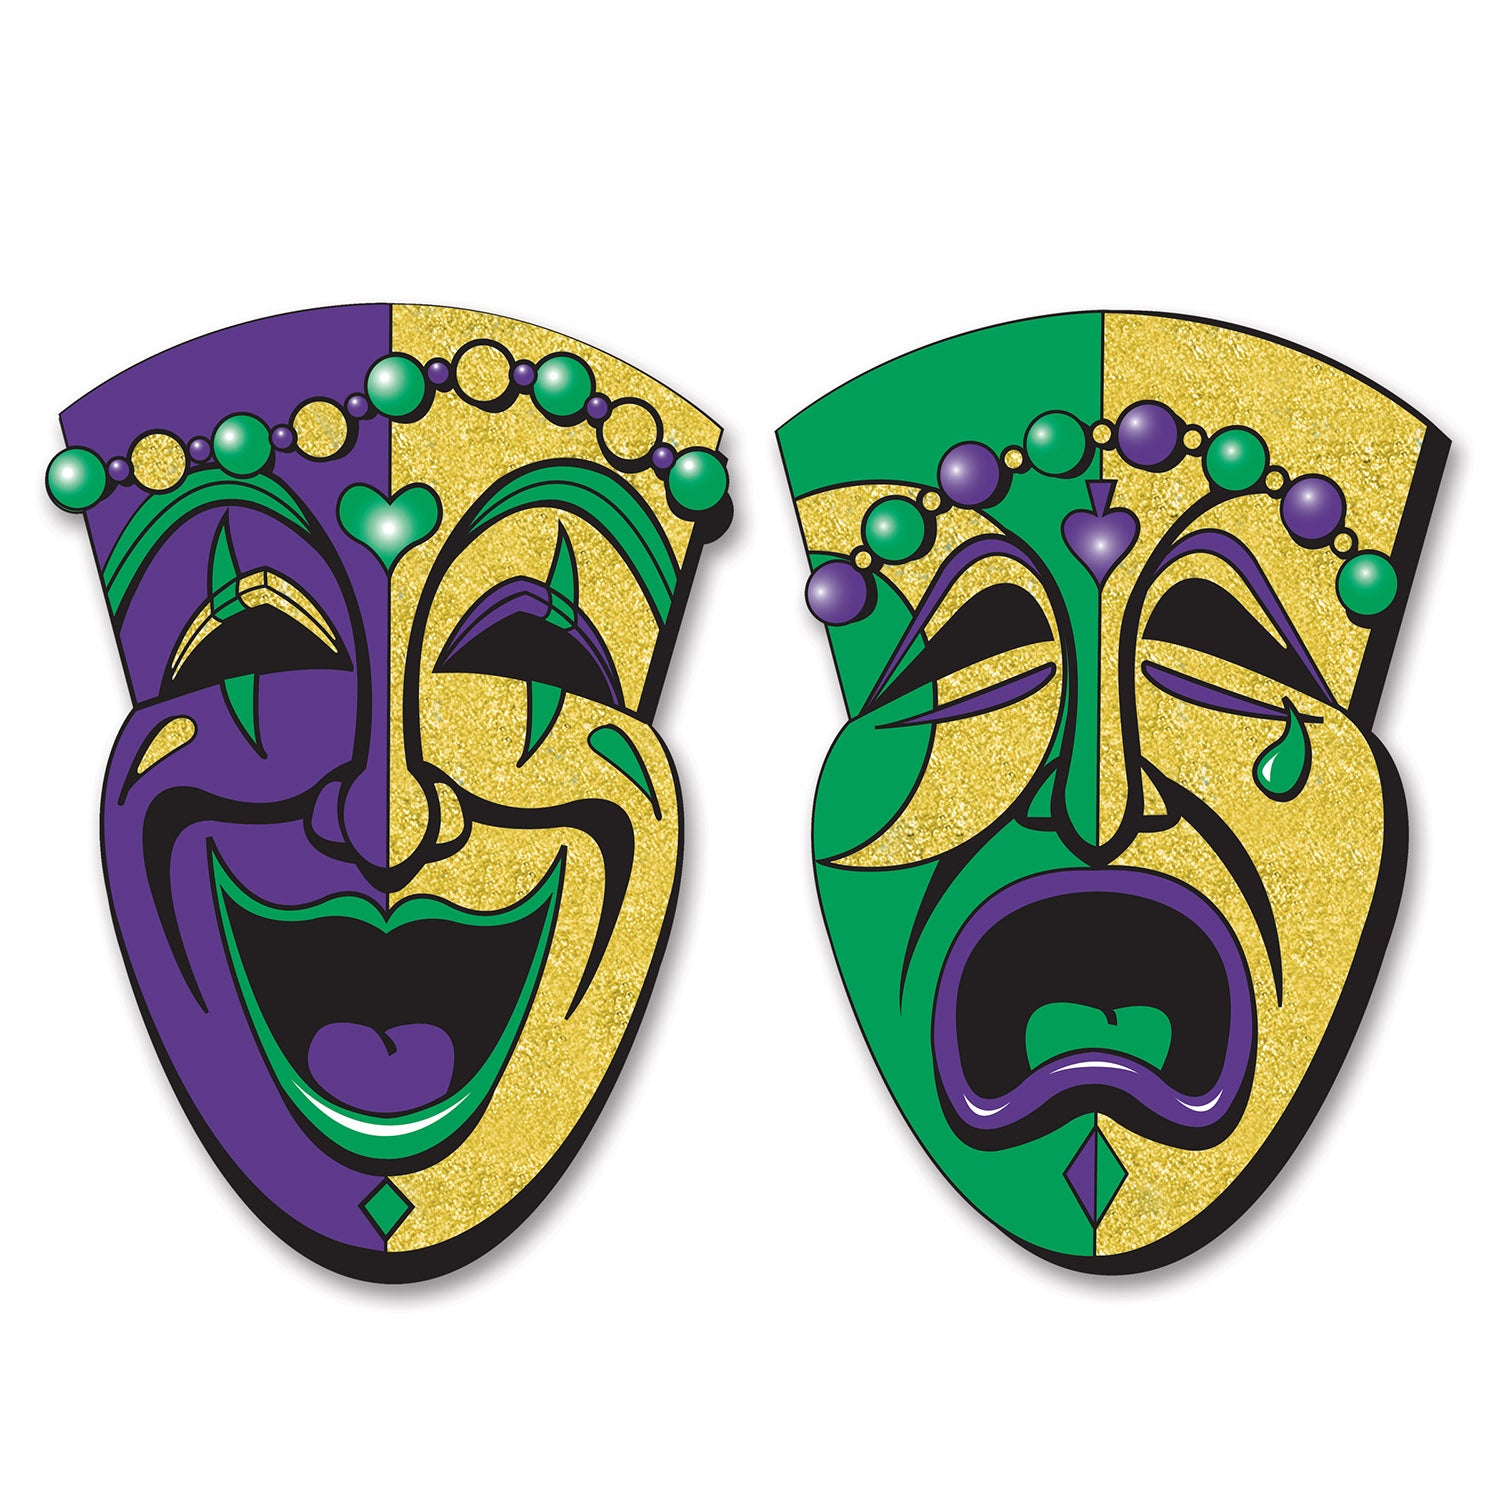 Jumbo Gltrd Comedy&Tragedy Face Cutouts (2/Pkg) by Beistle - Mardi Gras Theme Decorations